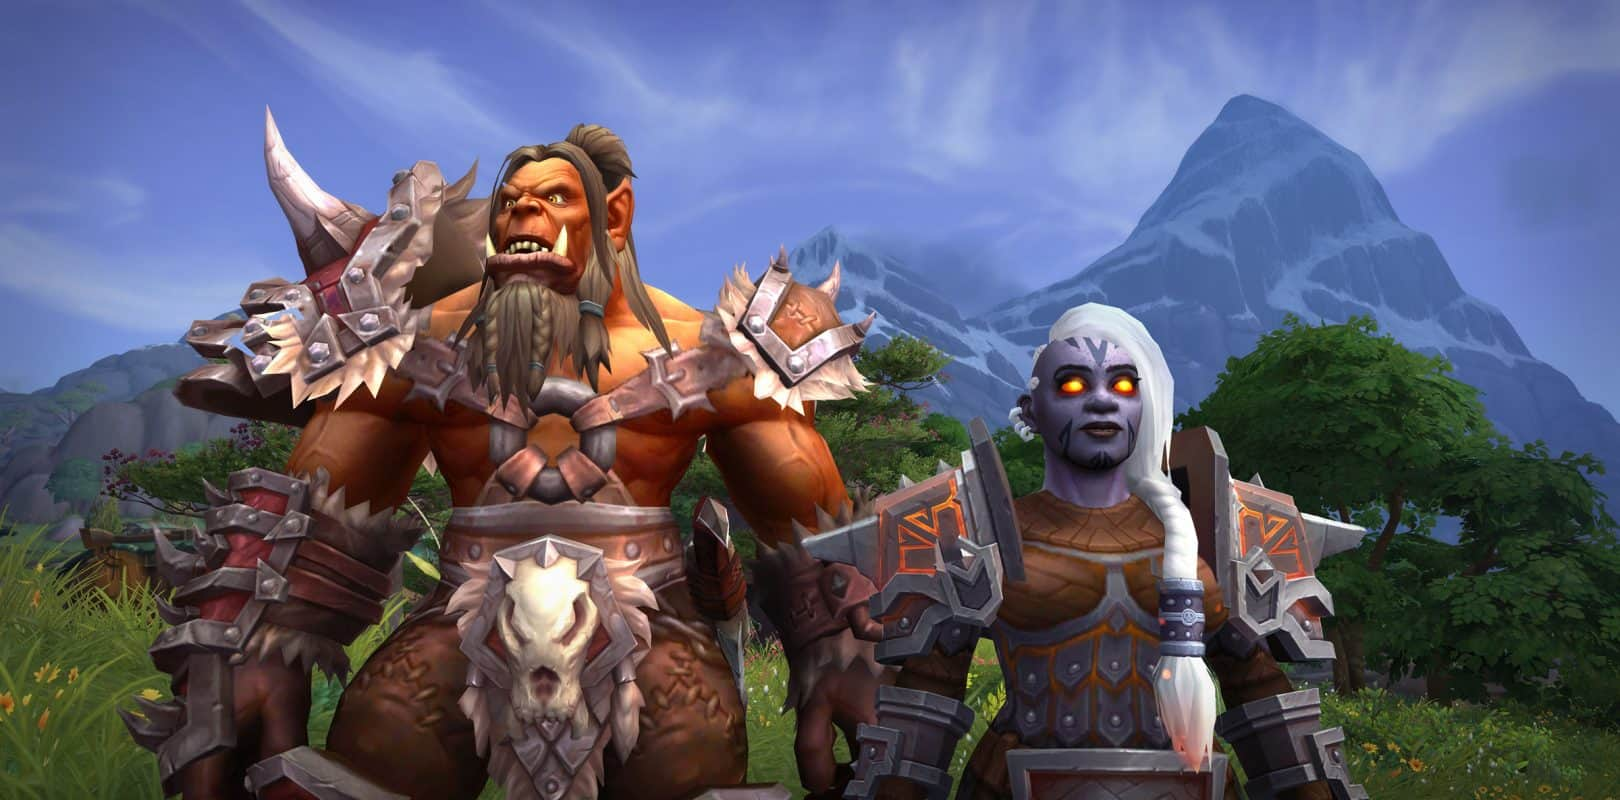 WoW - New Races | Dark Iron Dwarves and Mag'har Orcs - All